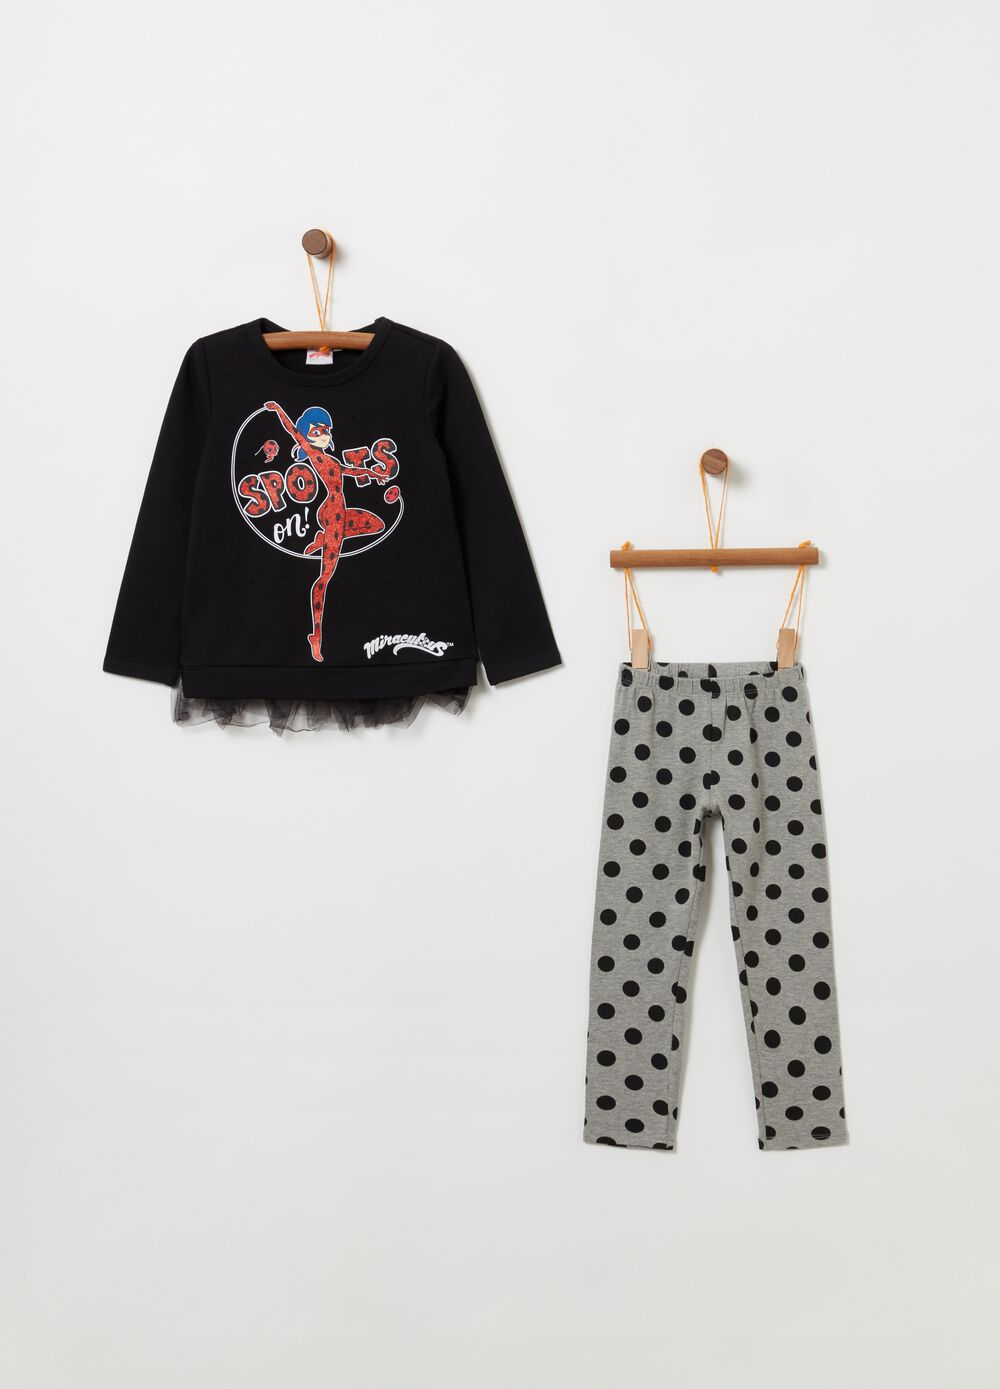 Ladybug jogging set with T-shirt and leggings